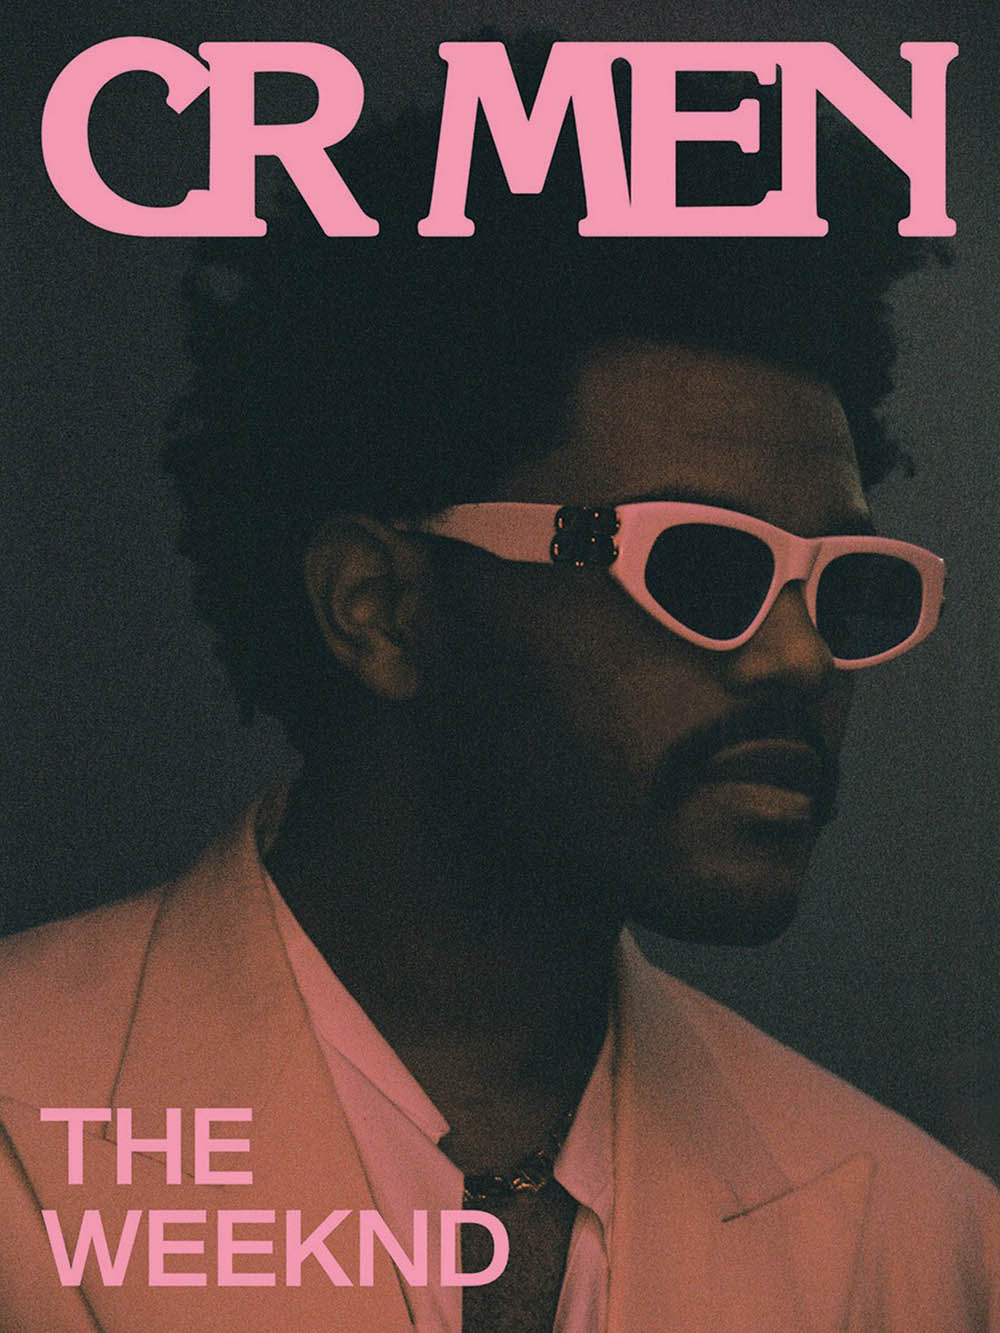 The Weeknd covers CR MEN Issue 10 by Davit Giorgadze